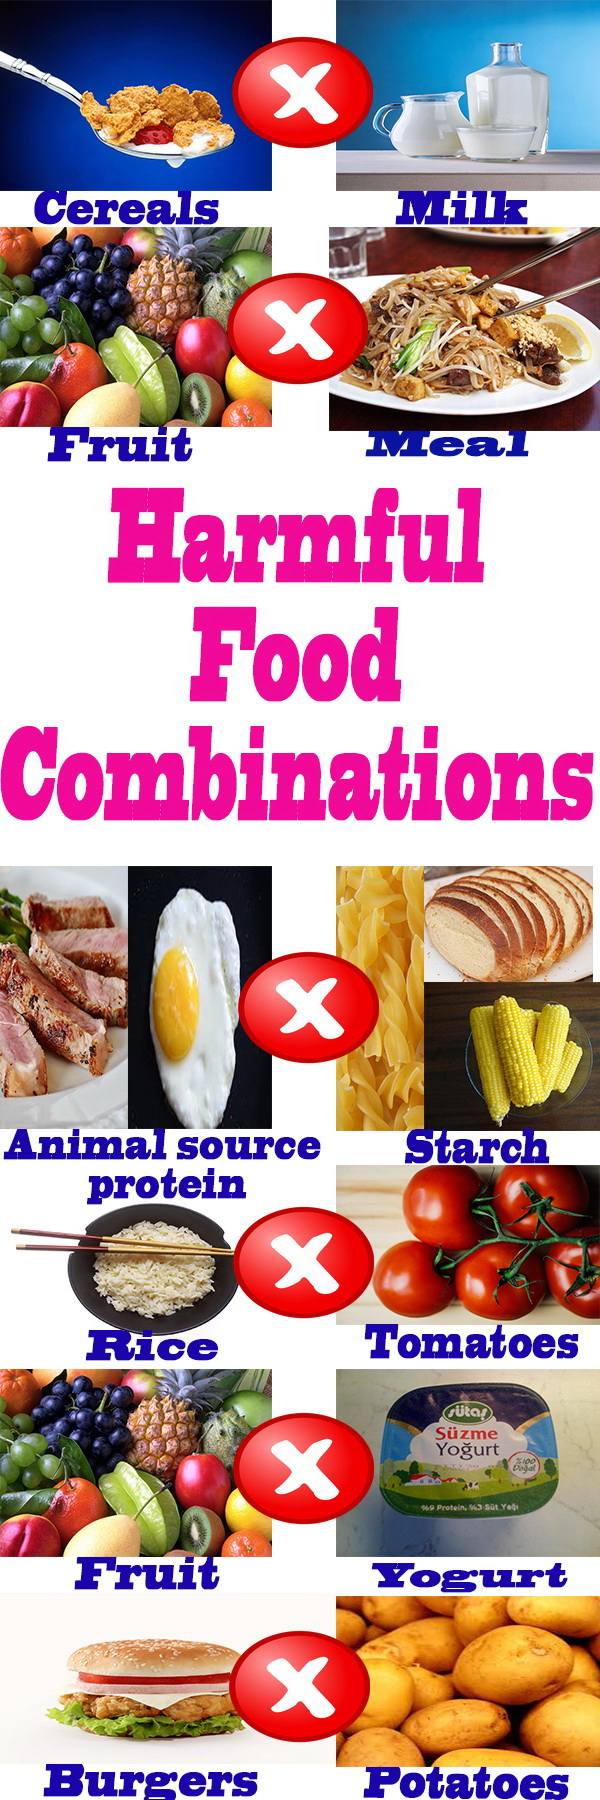 Claim that these are harmful combinations of products 79